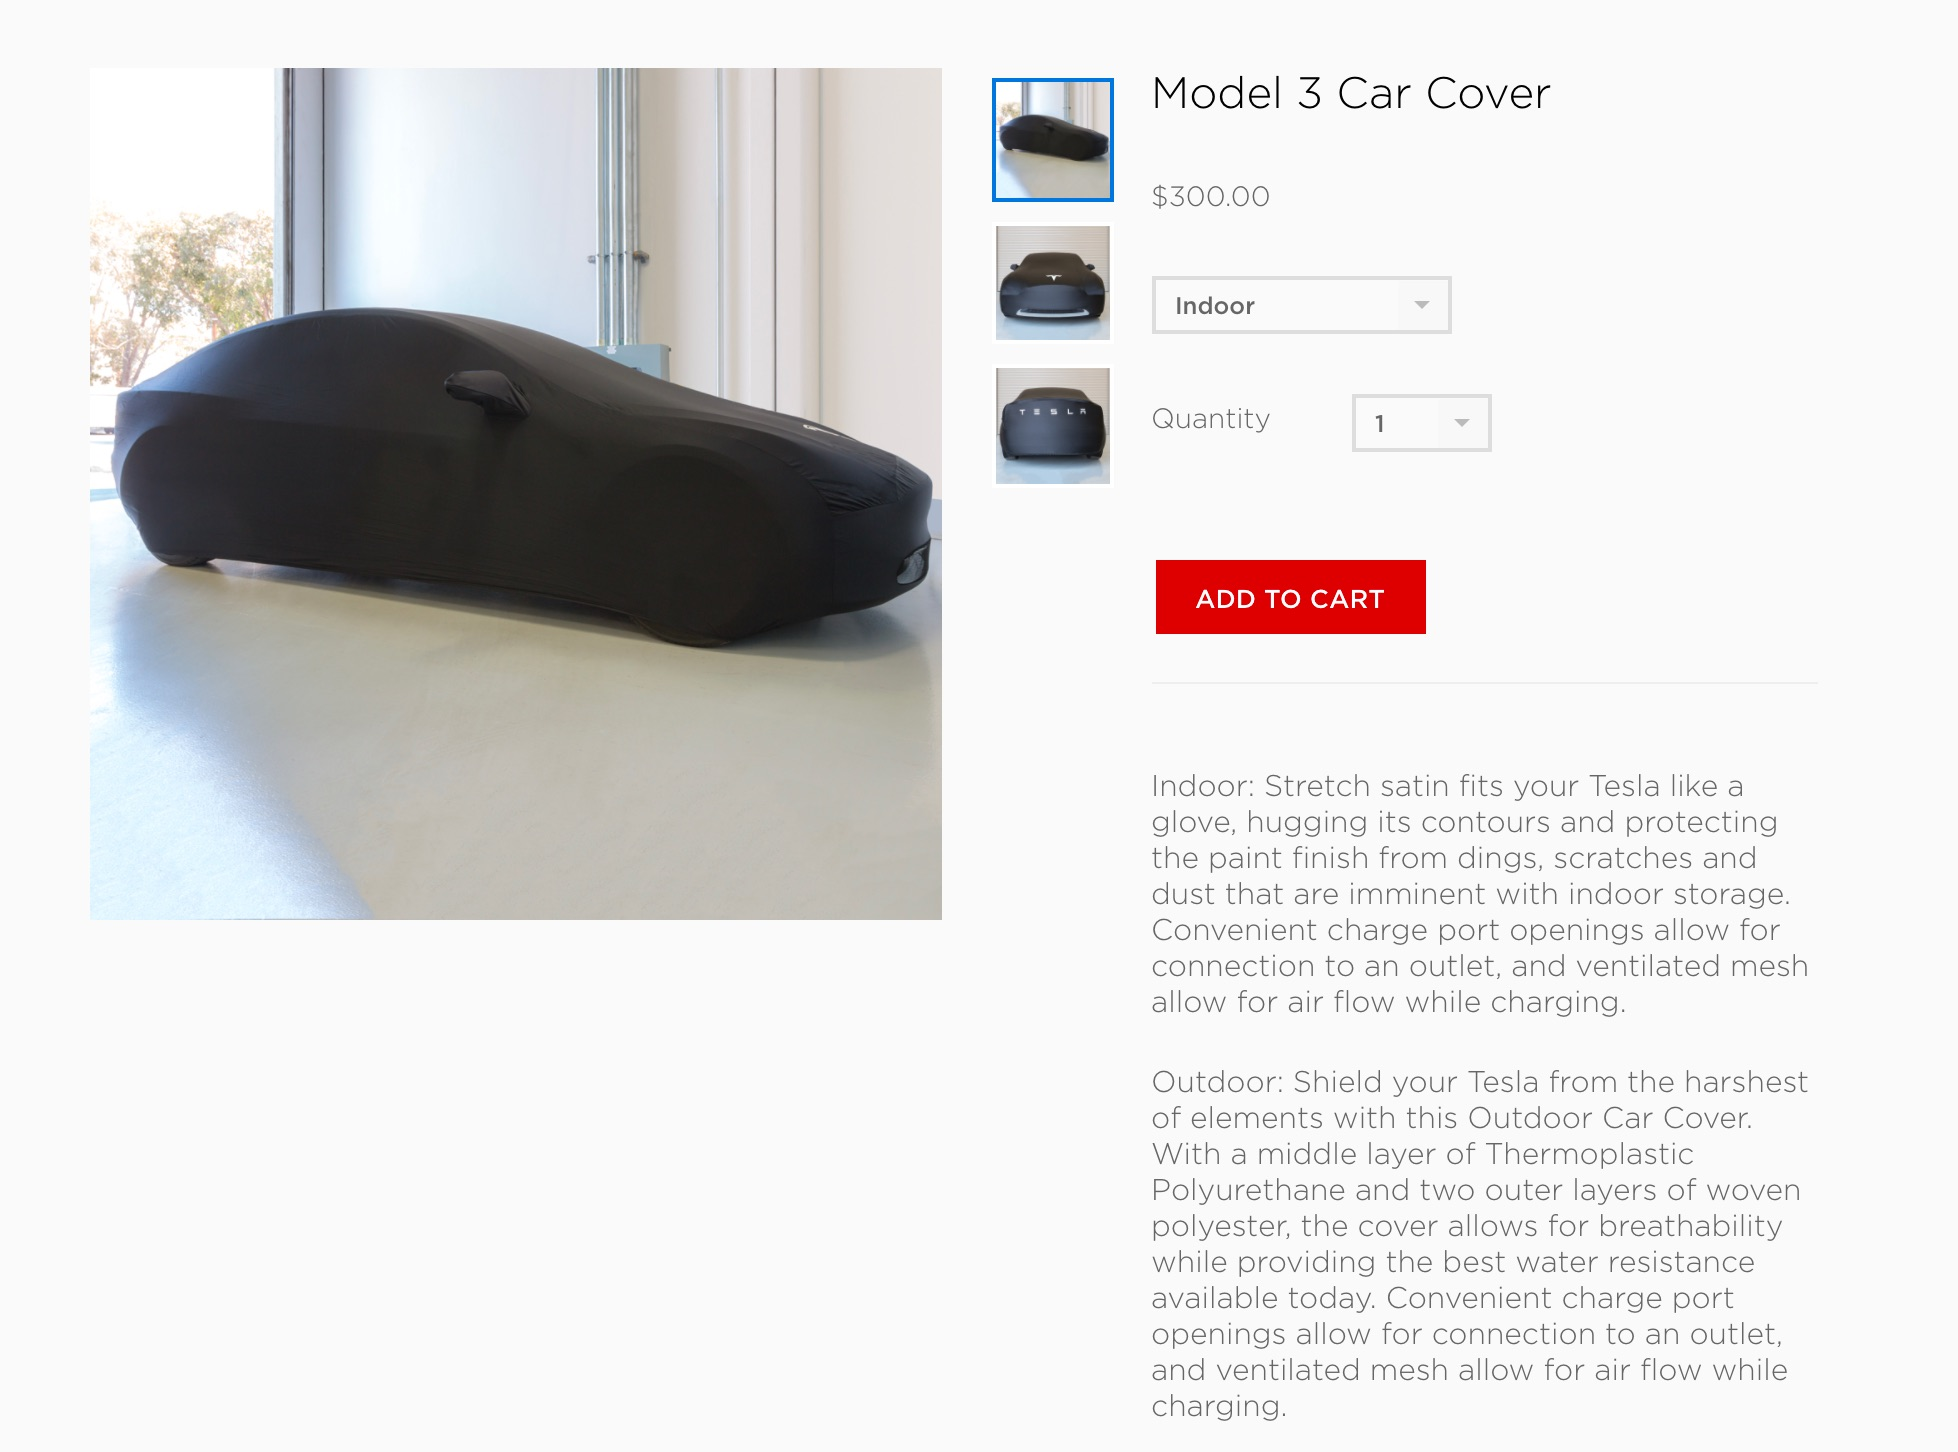 Car Covers Target >> Tesla adds Model 3 car cover as optional accessory to online store